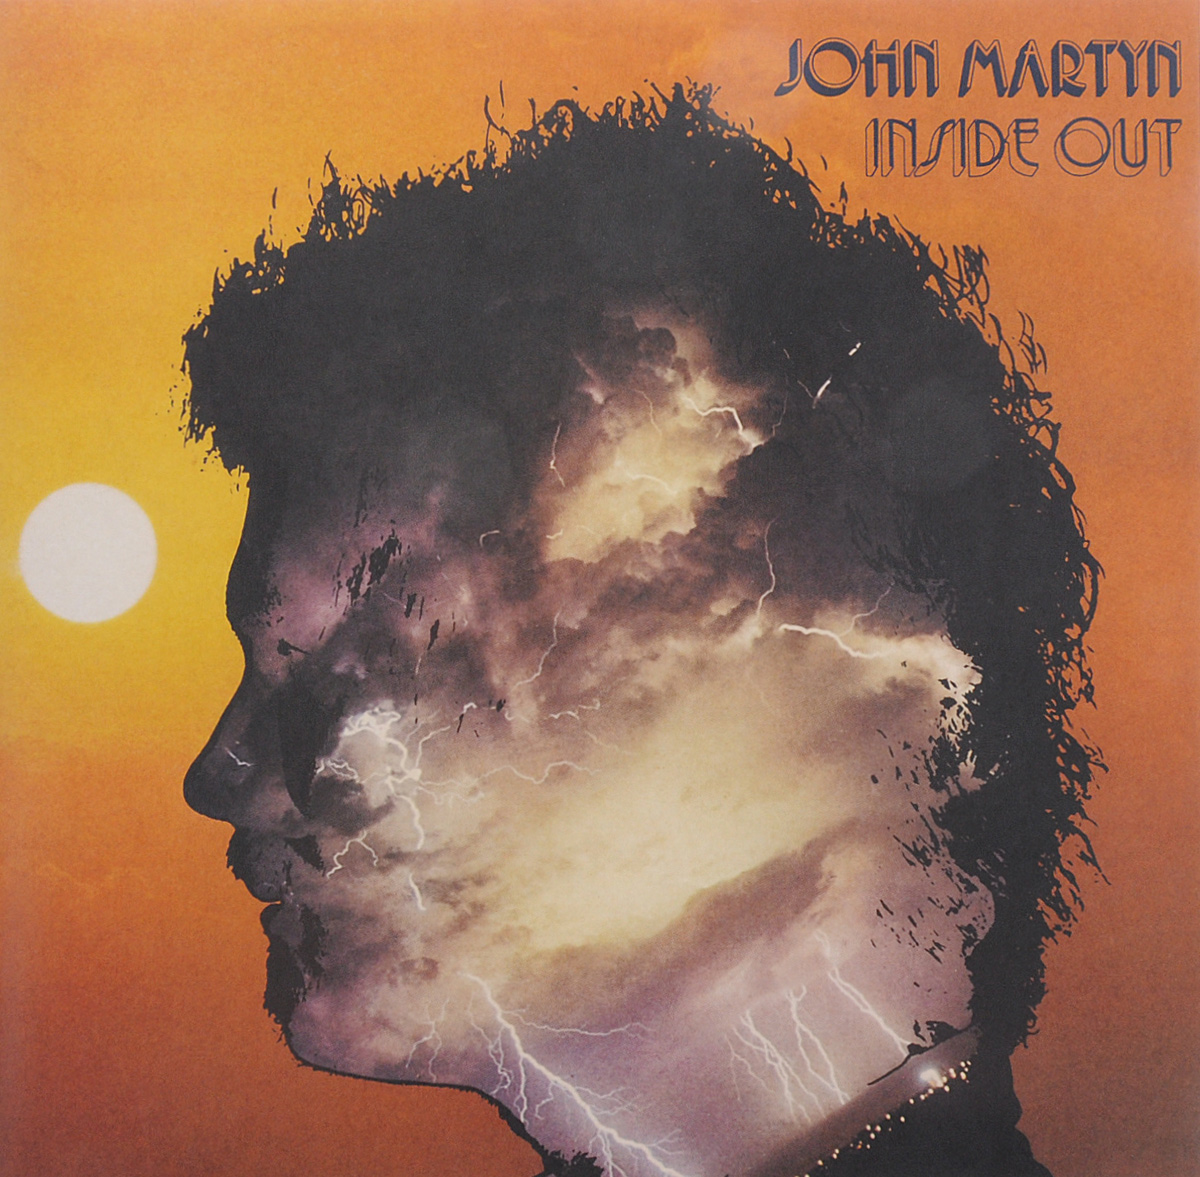 Джон Мартин John Martyn. Inside Out (LP) цена и фото